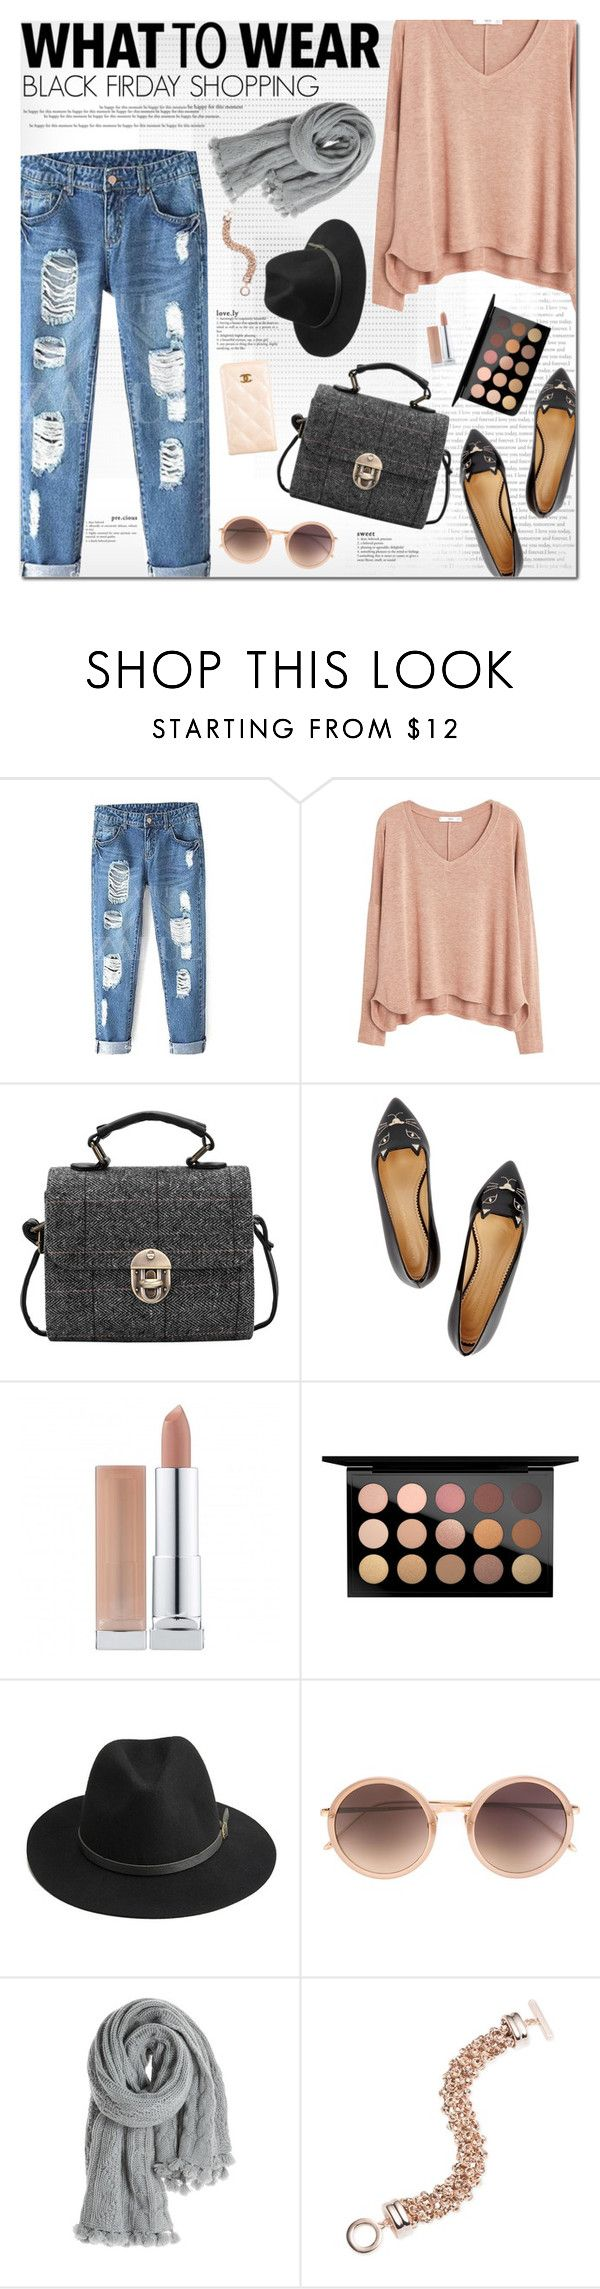 """""""What to Wear: Black Friday Shopping   20 Nov 2015"""" by kristinksn ❤ liked on Polyvore featuring MANGO, Charlotte Olympia, MAC Cosmetics, BeckSöndergaard, Linda Farrow, Calypso St. Barth, Anne Klein, Chanel and shoptilyoudrop"""